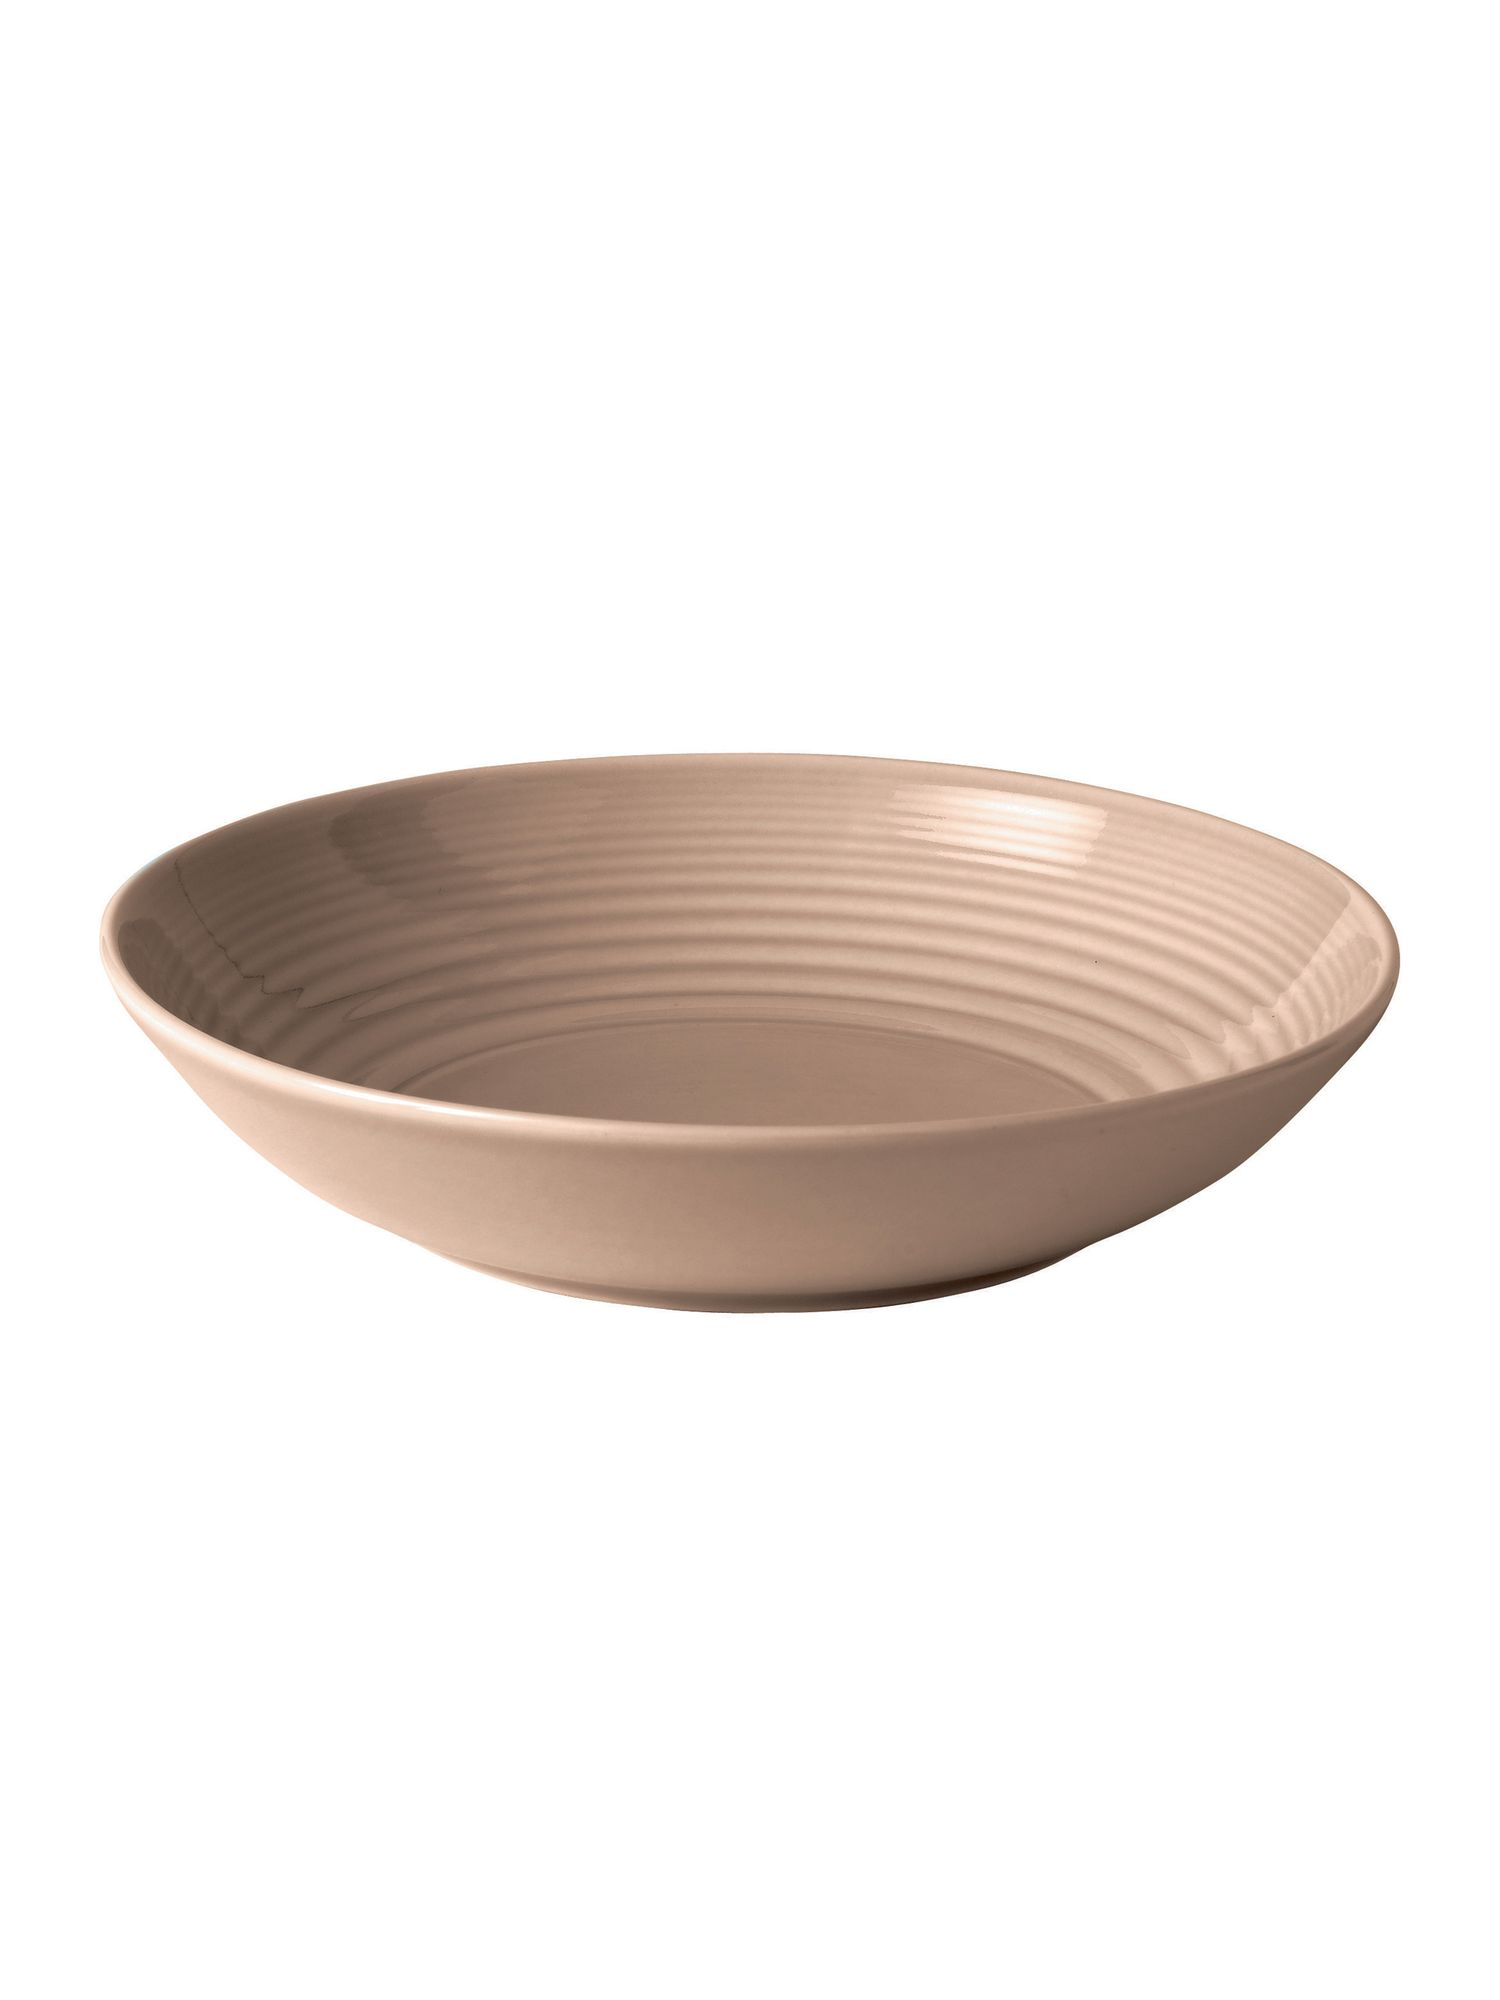 Gordon Ramsay maze taupe open vegetable bowl